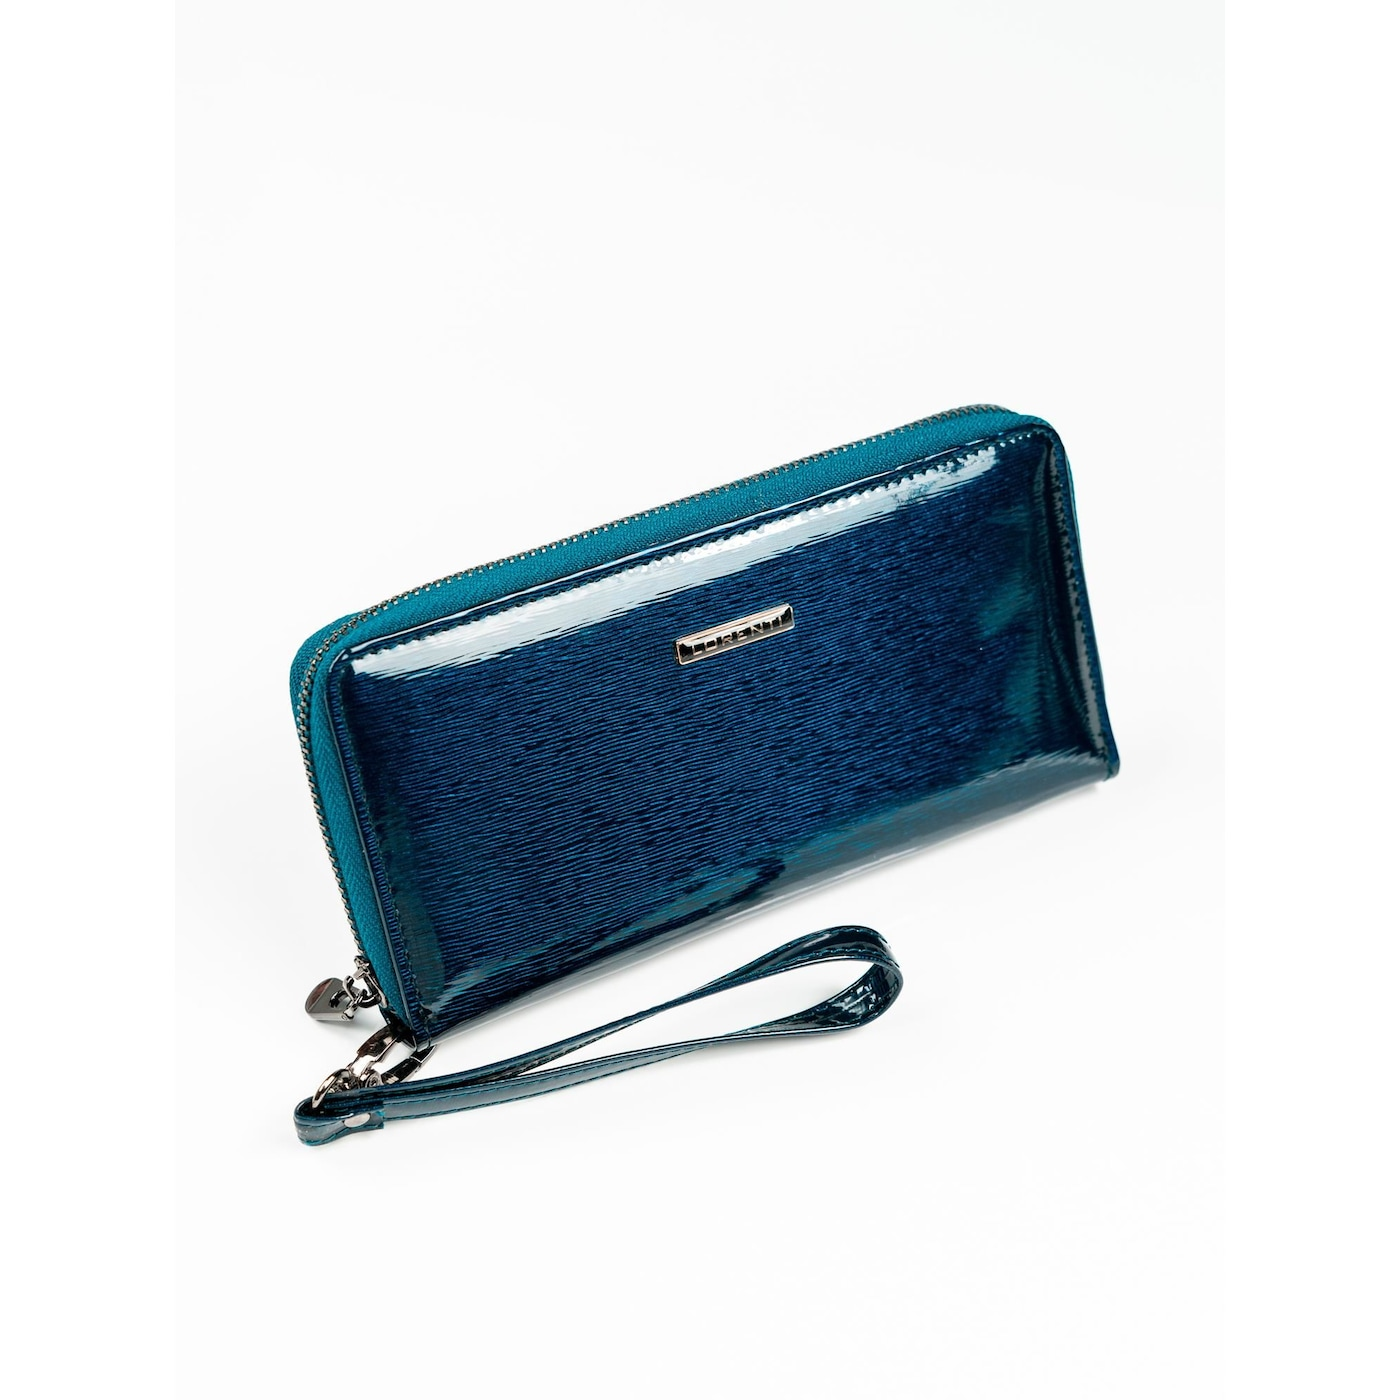 Patent leather wallet with a navy blue handle